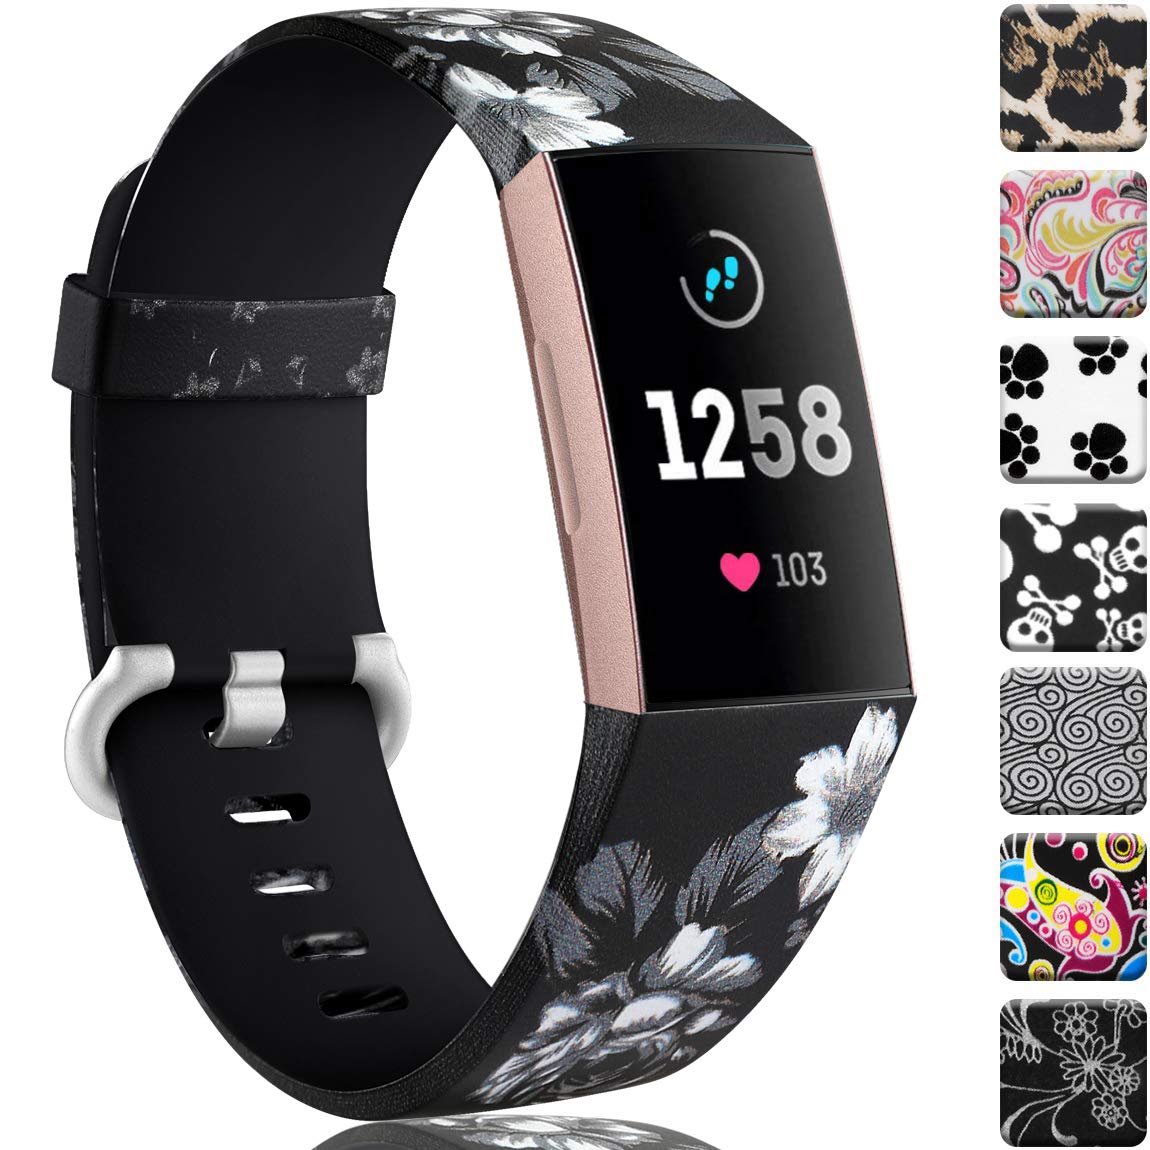 Maledan Compatible with Charge 3 Bands and Charge 4 Bands for Women Men, Cloud Pattern, Small